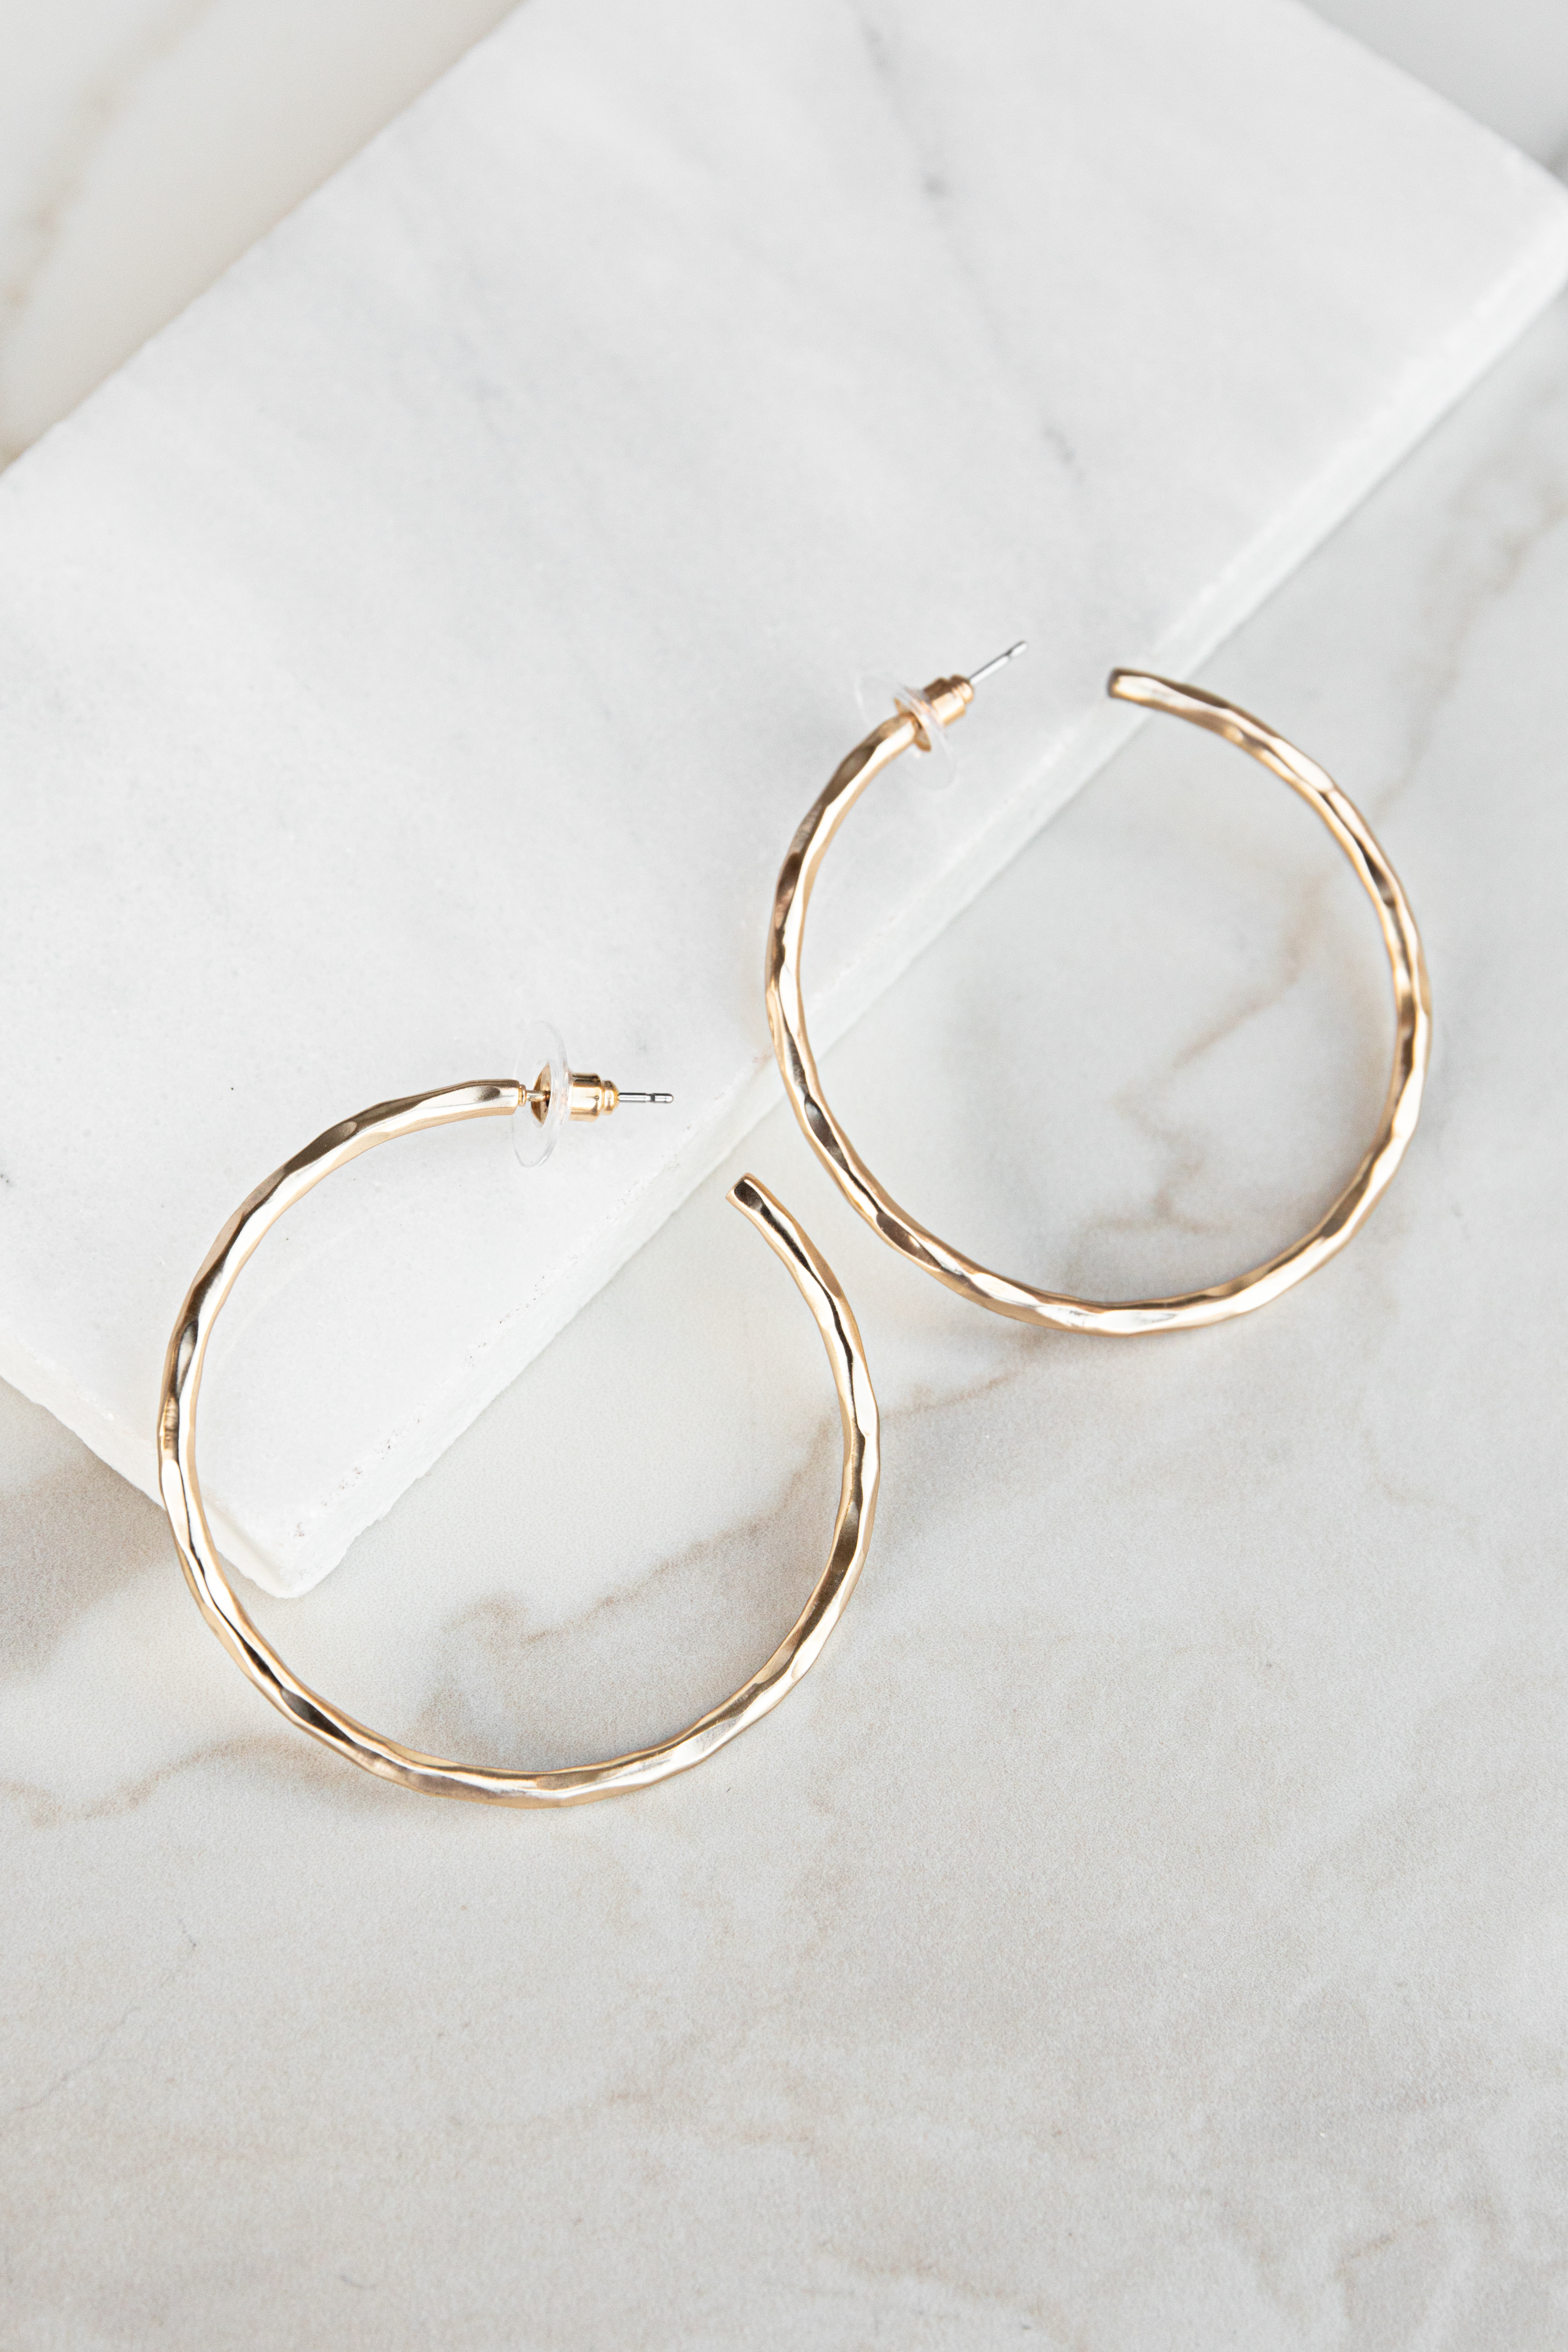 Gold Matte Hoop Earrings with Hammered Texture